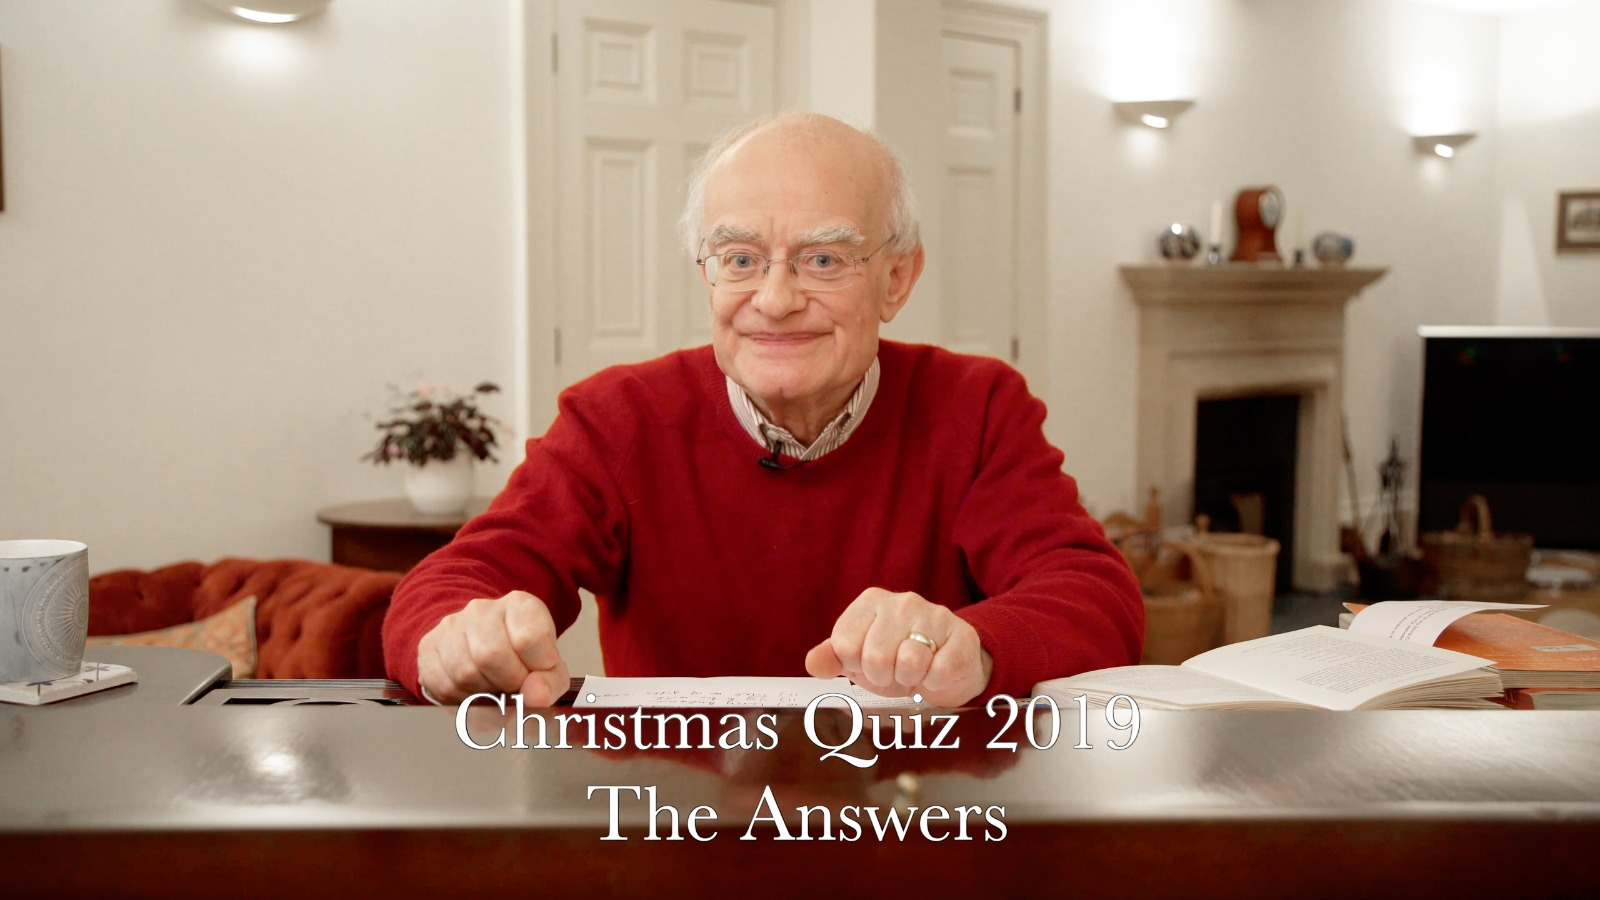 Christmas Quiz 2019: The Answers